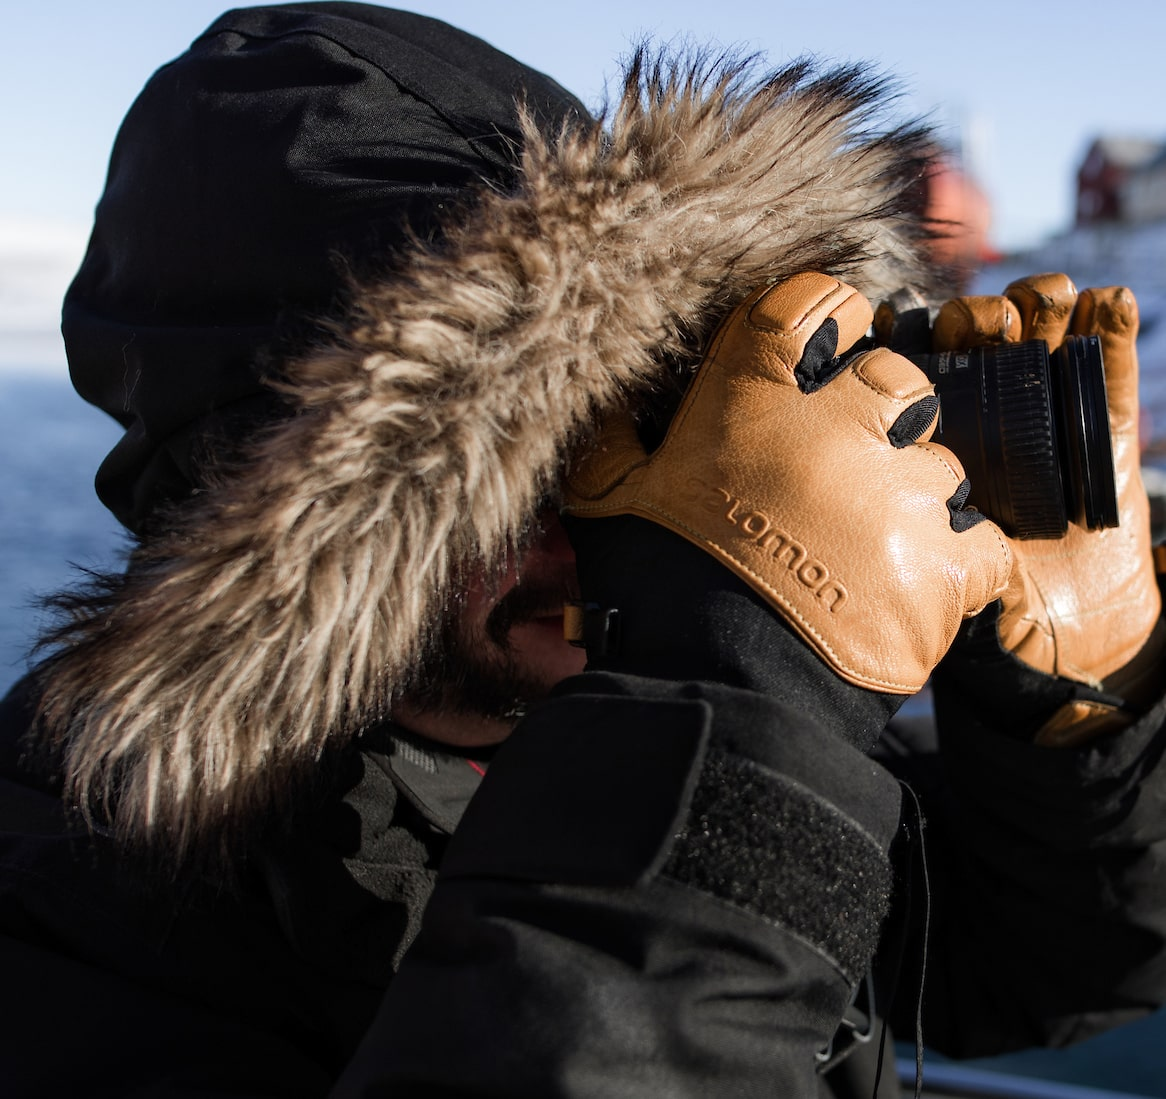 Photography in tour. Photo by Aningaaq R Carlsen - Visit Greenland